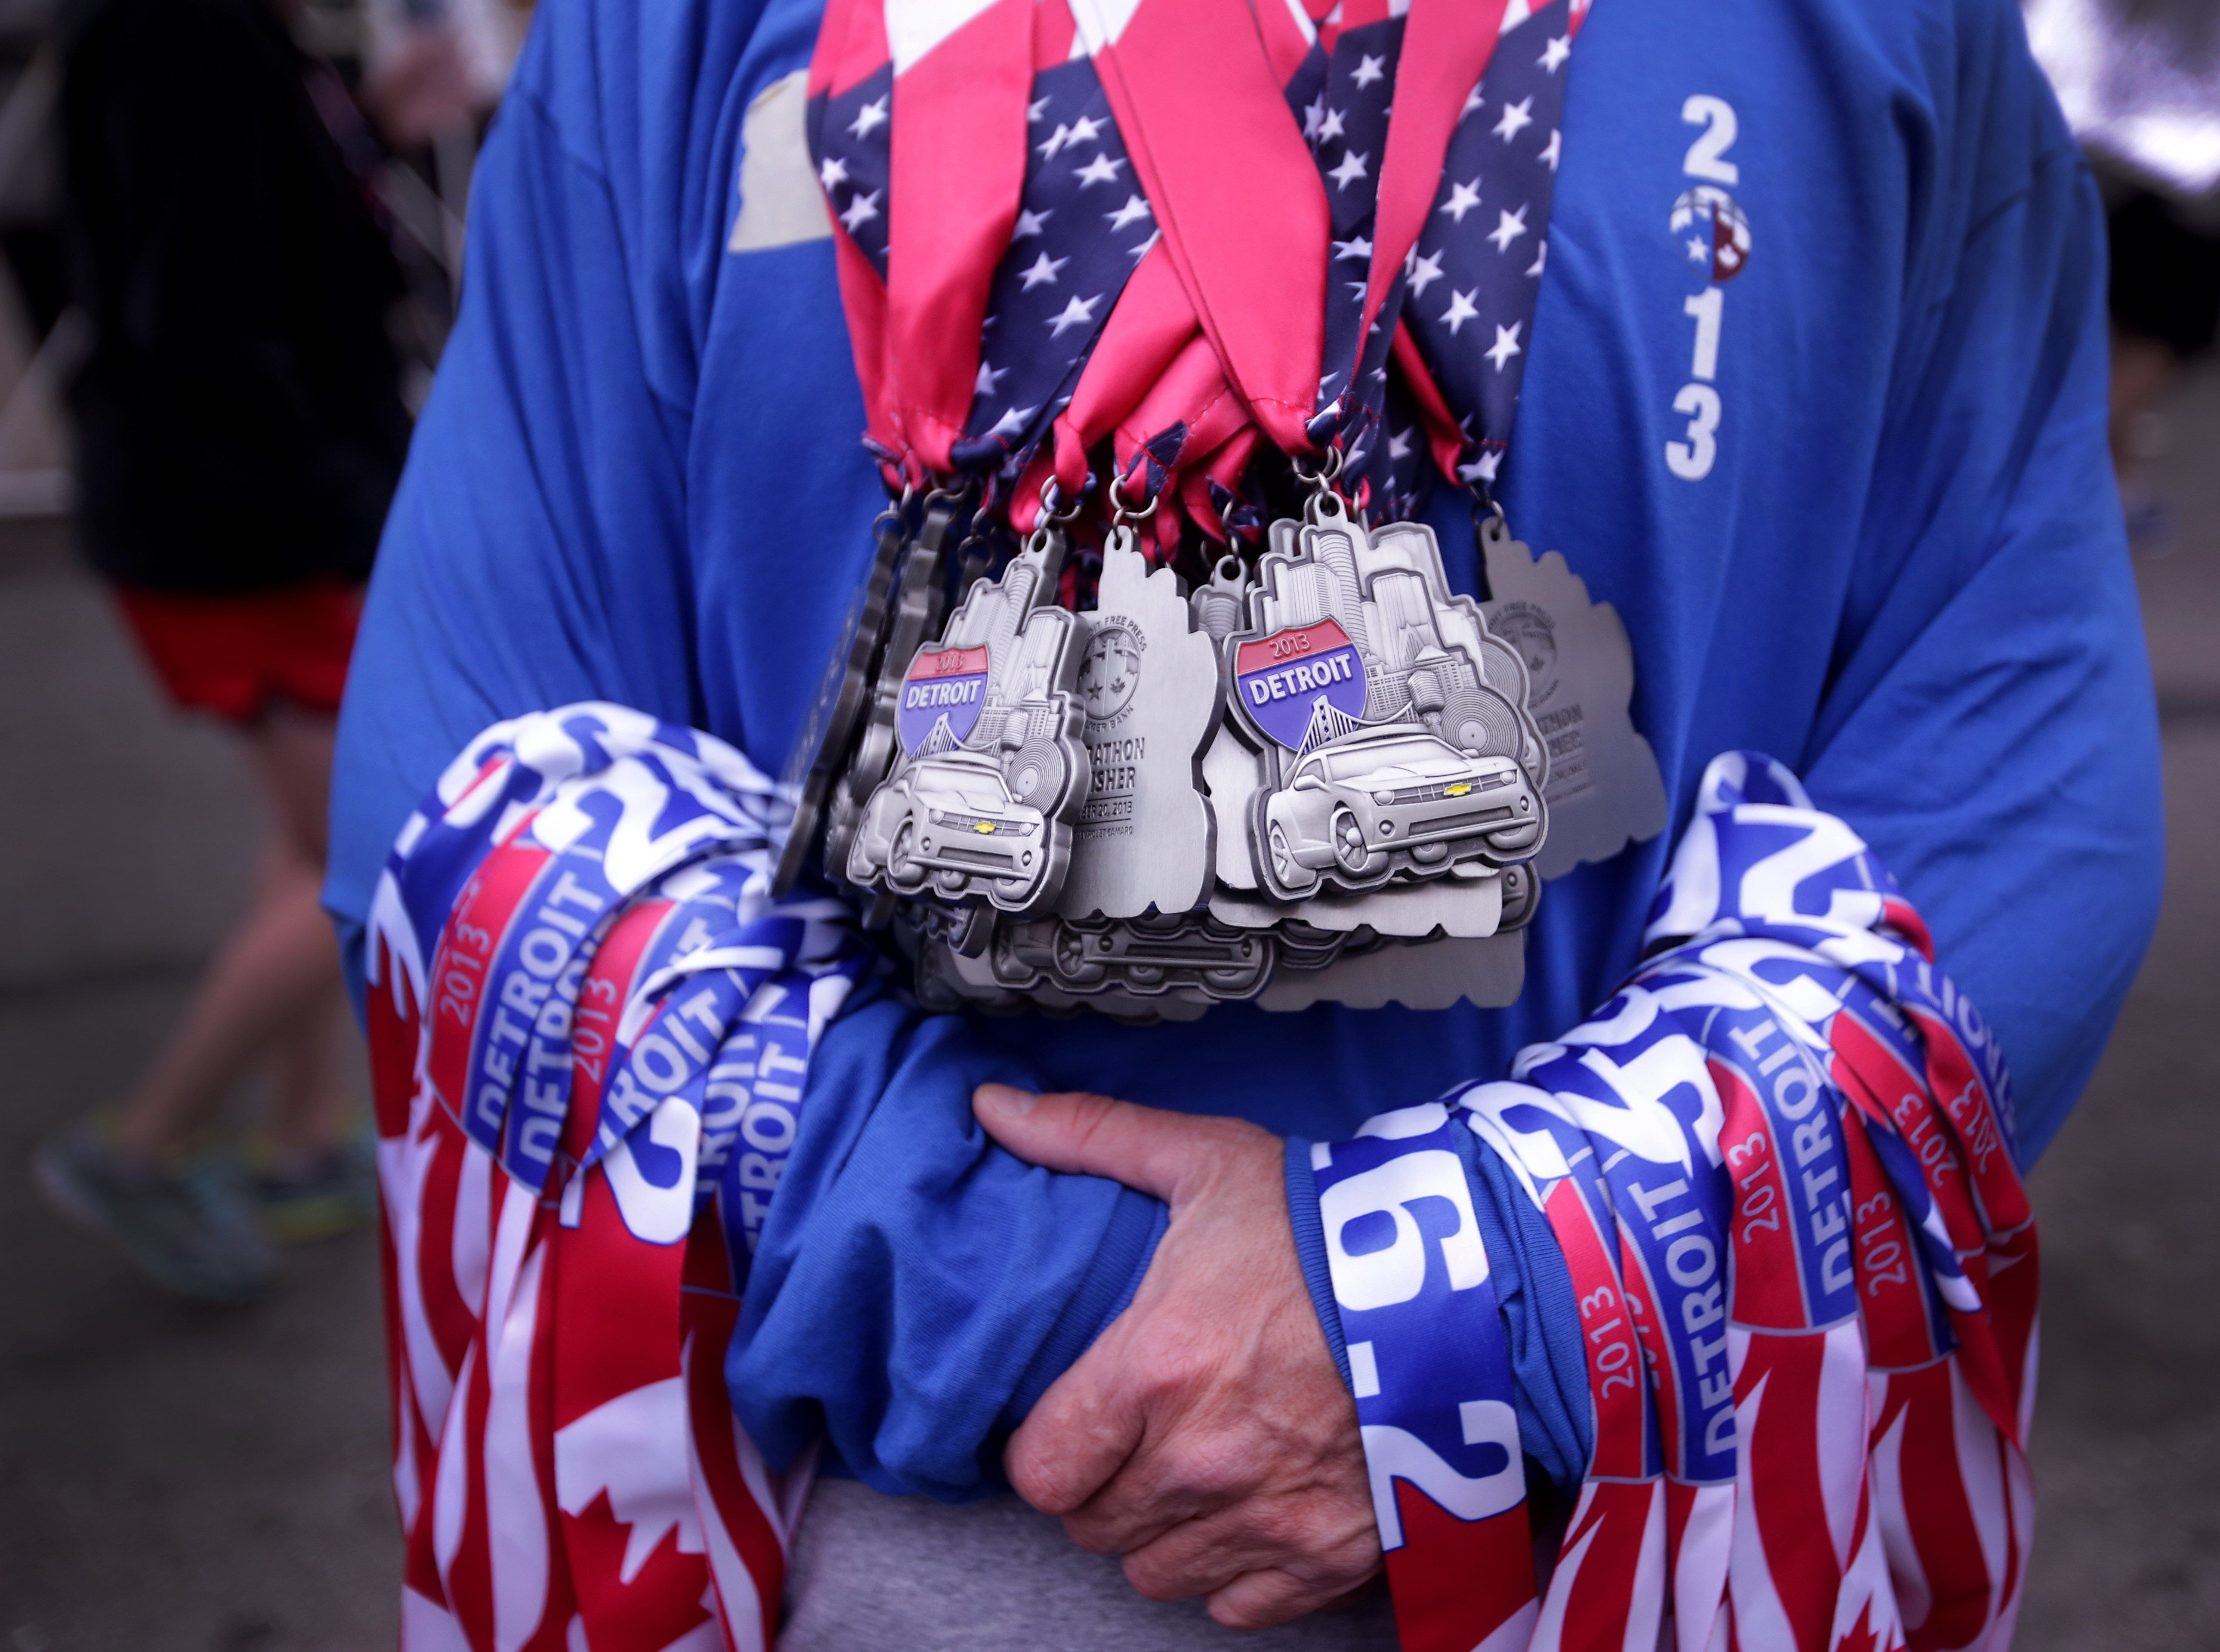 A volunteer holds the 26.2 marathon finisher medals at  the 36th Annual Detroit Free Press/Talmer Bank Marathon in Detroit Sunday, Oct. 20, 2013.